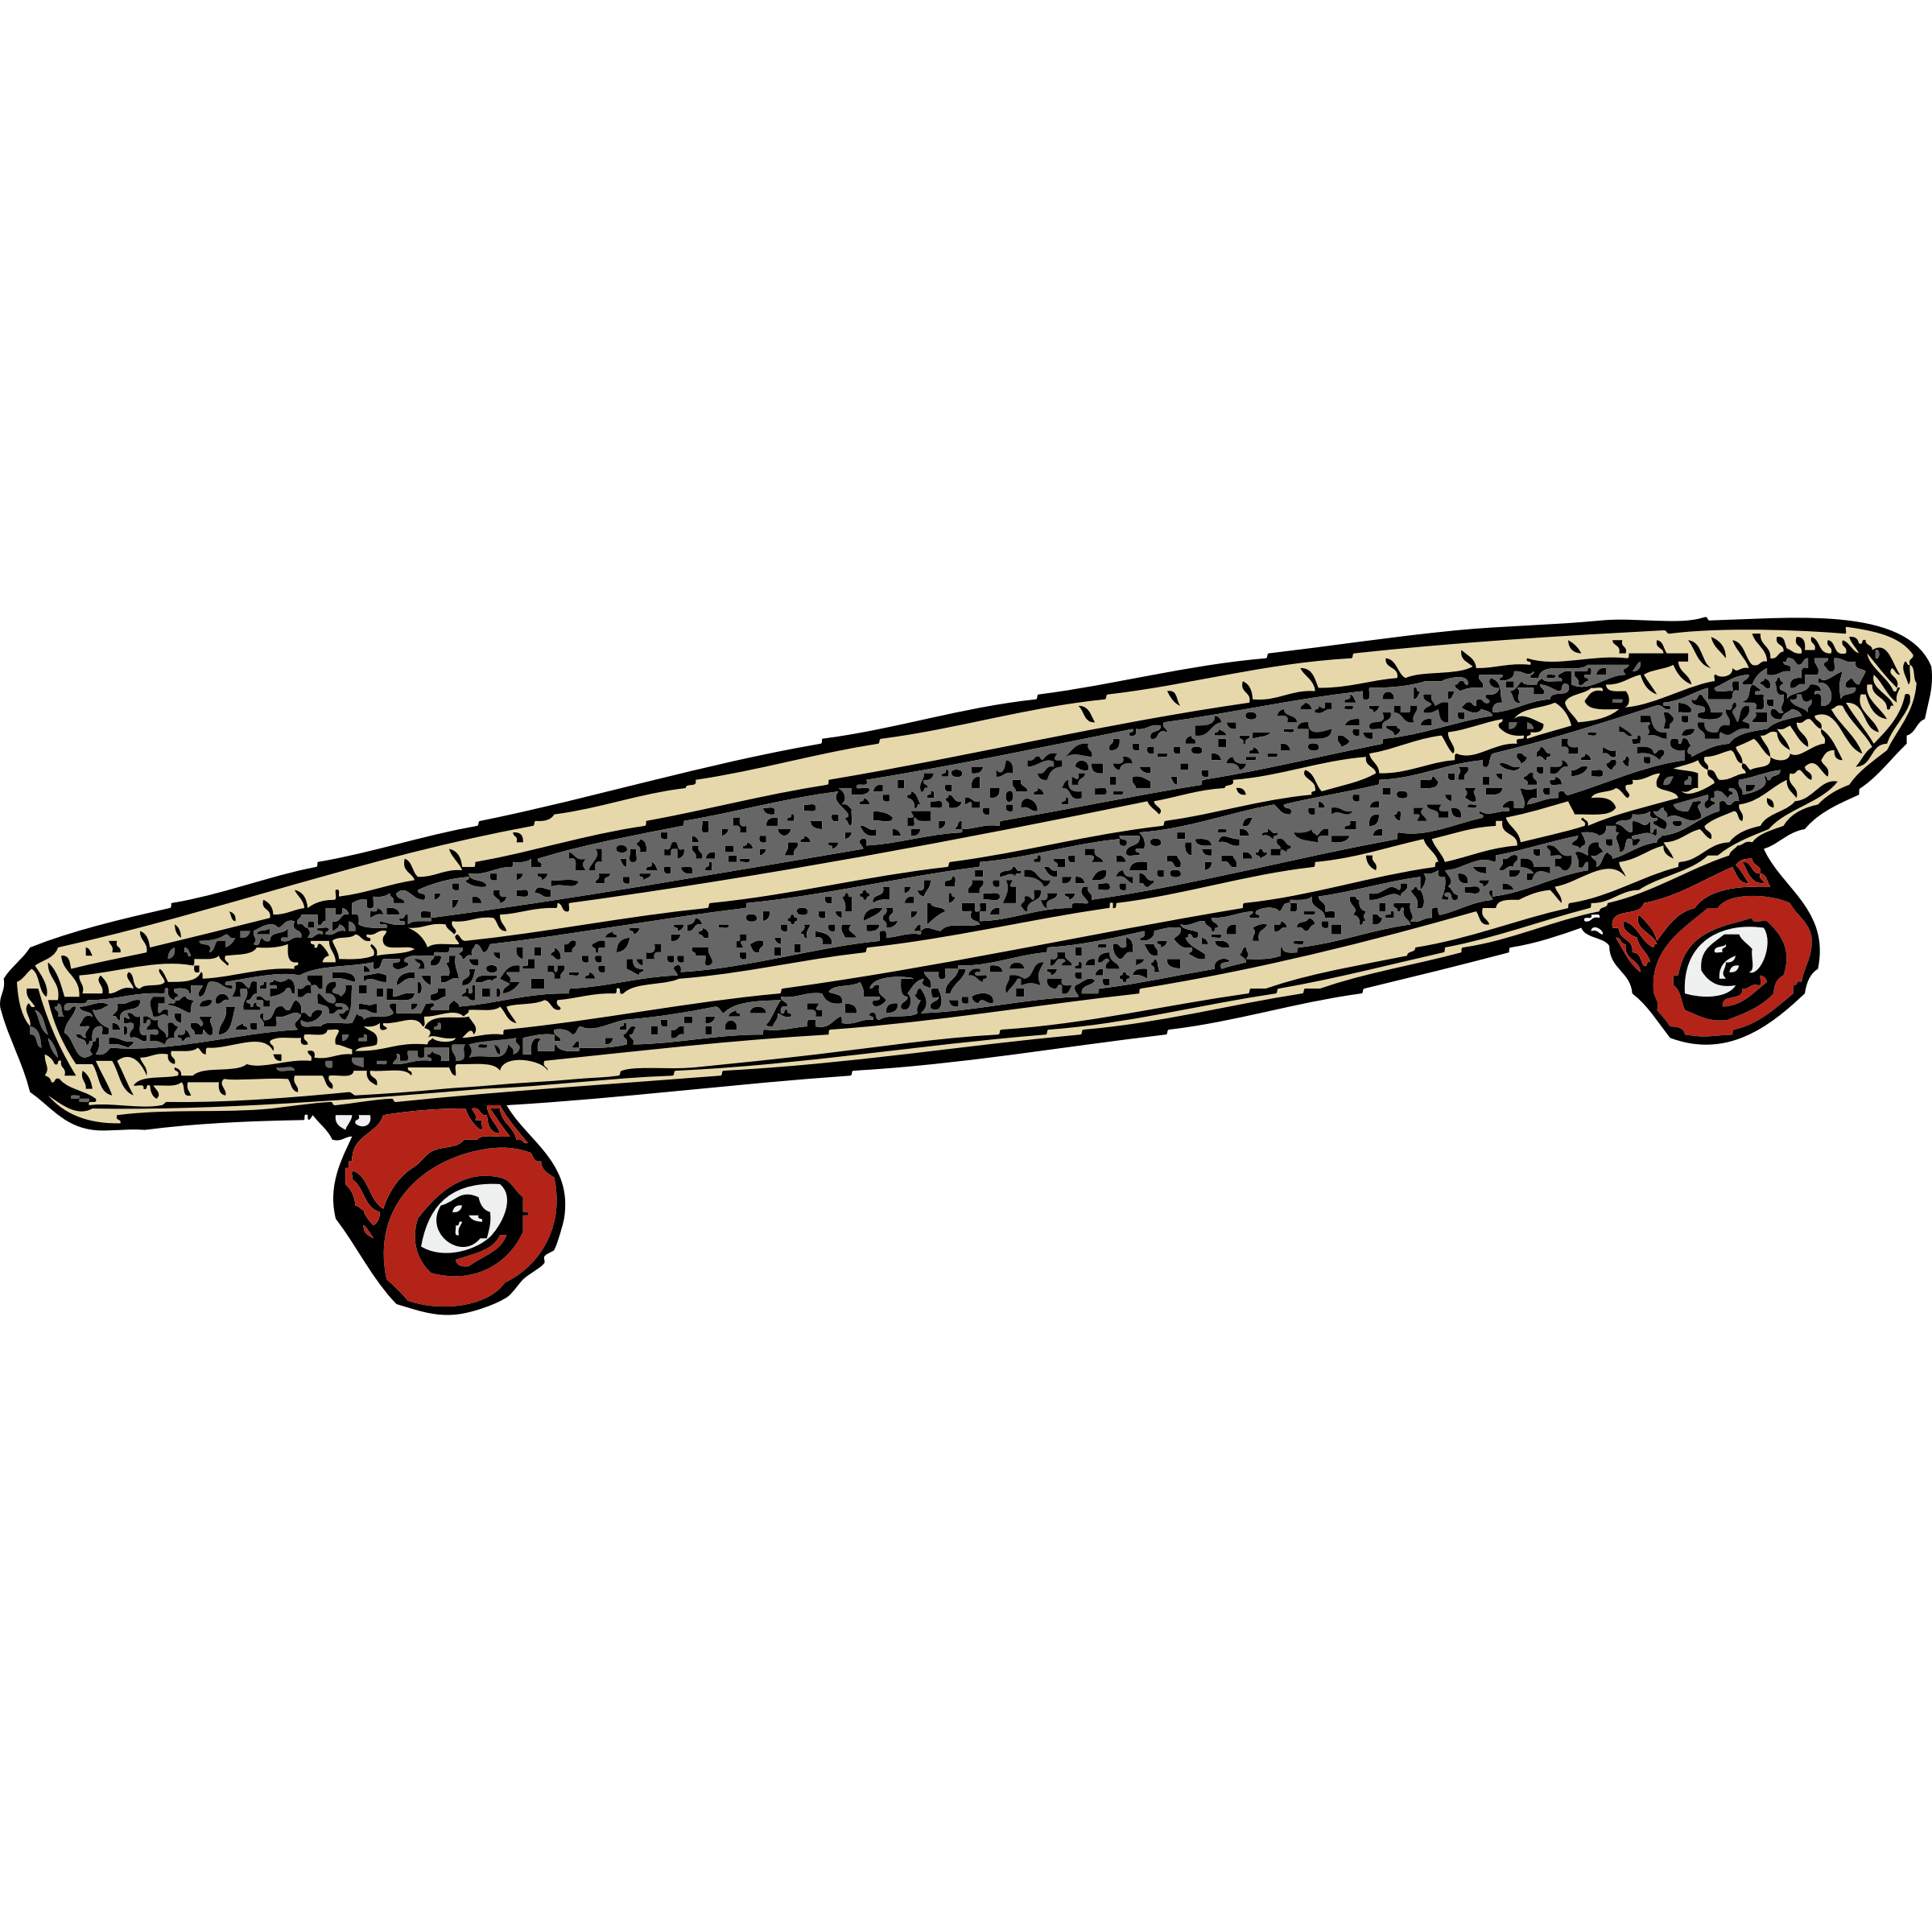 Ollie skateboarding concentrate clipart image.